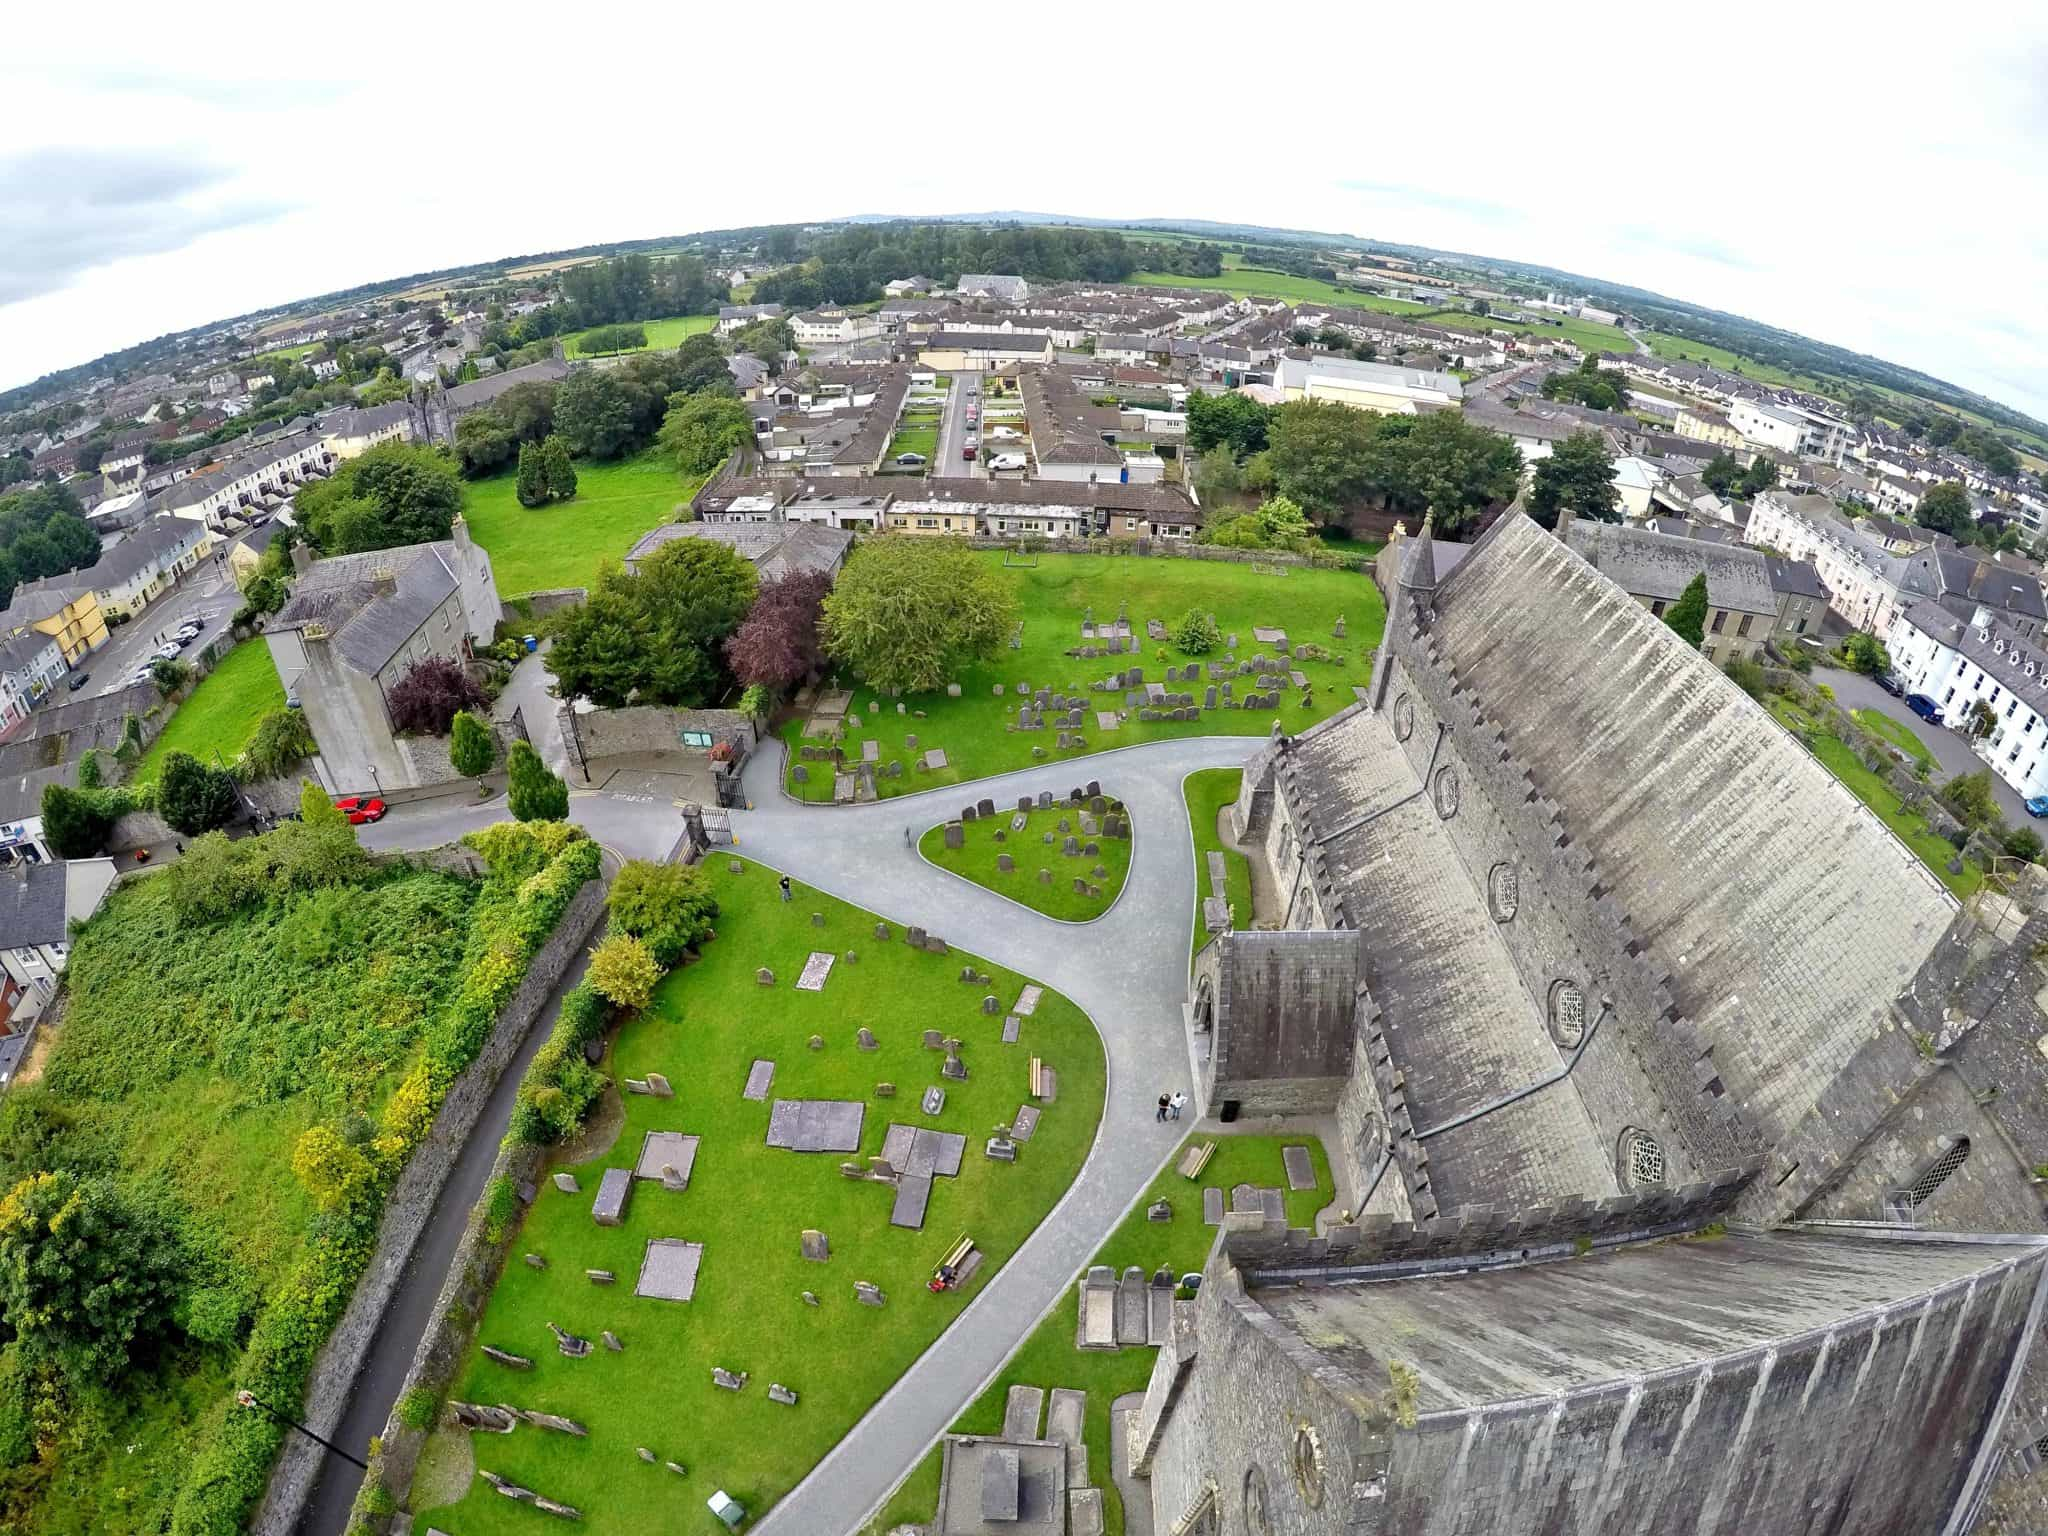 Views from the top of St Canice's Cathedral in Kilkenny